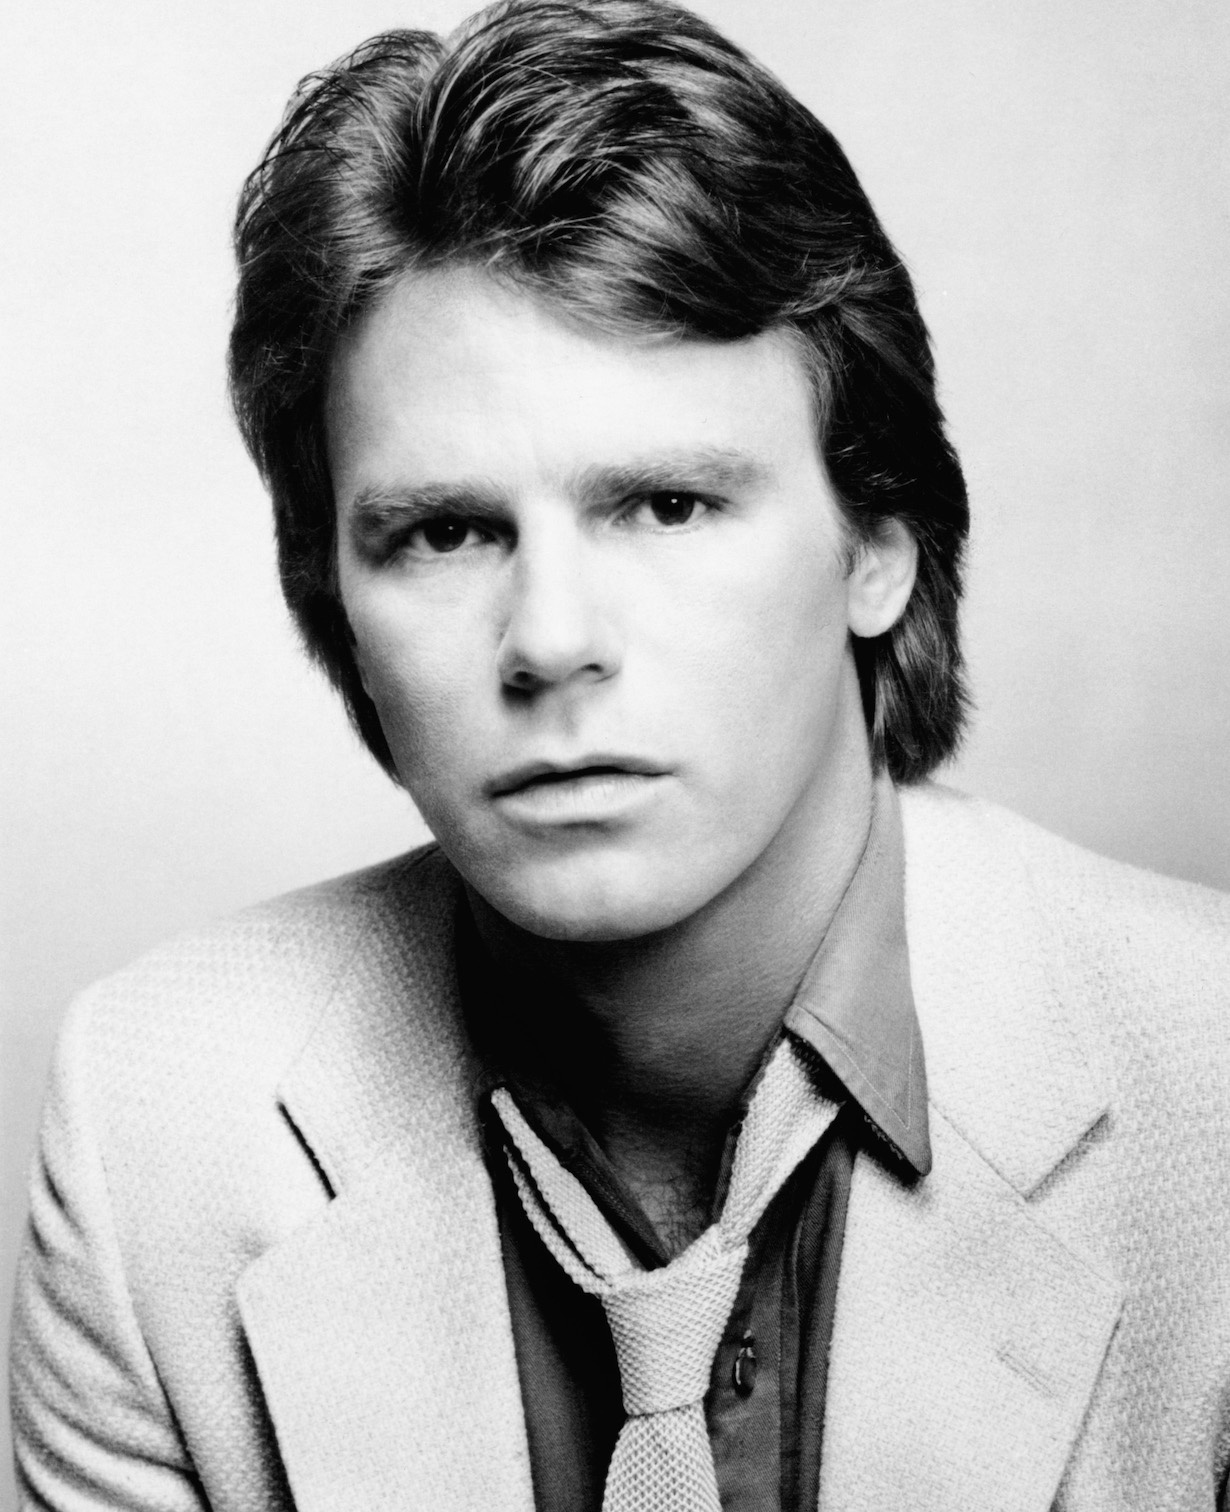 GENERAL HOSPITAL, Richard Dean Anderson, (1976-81), 1963-, (c)ABC/courtesy Everett Collection